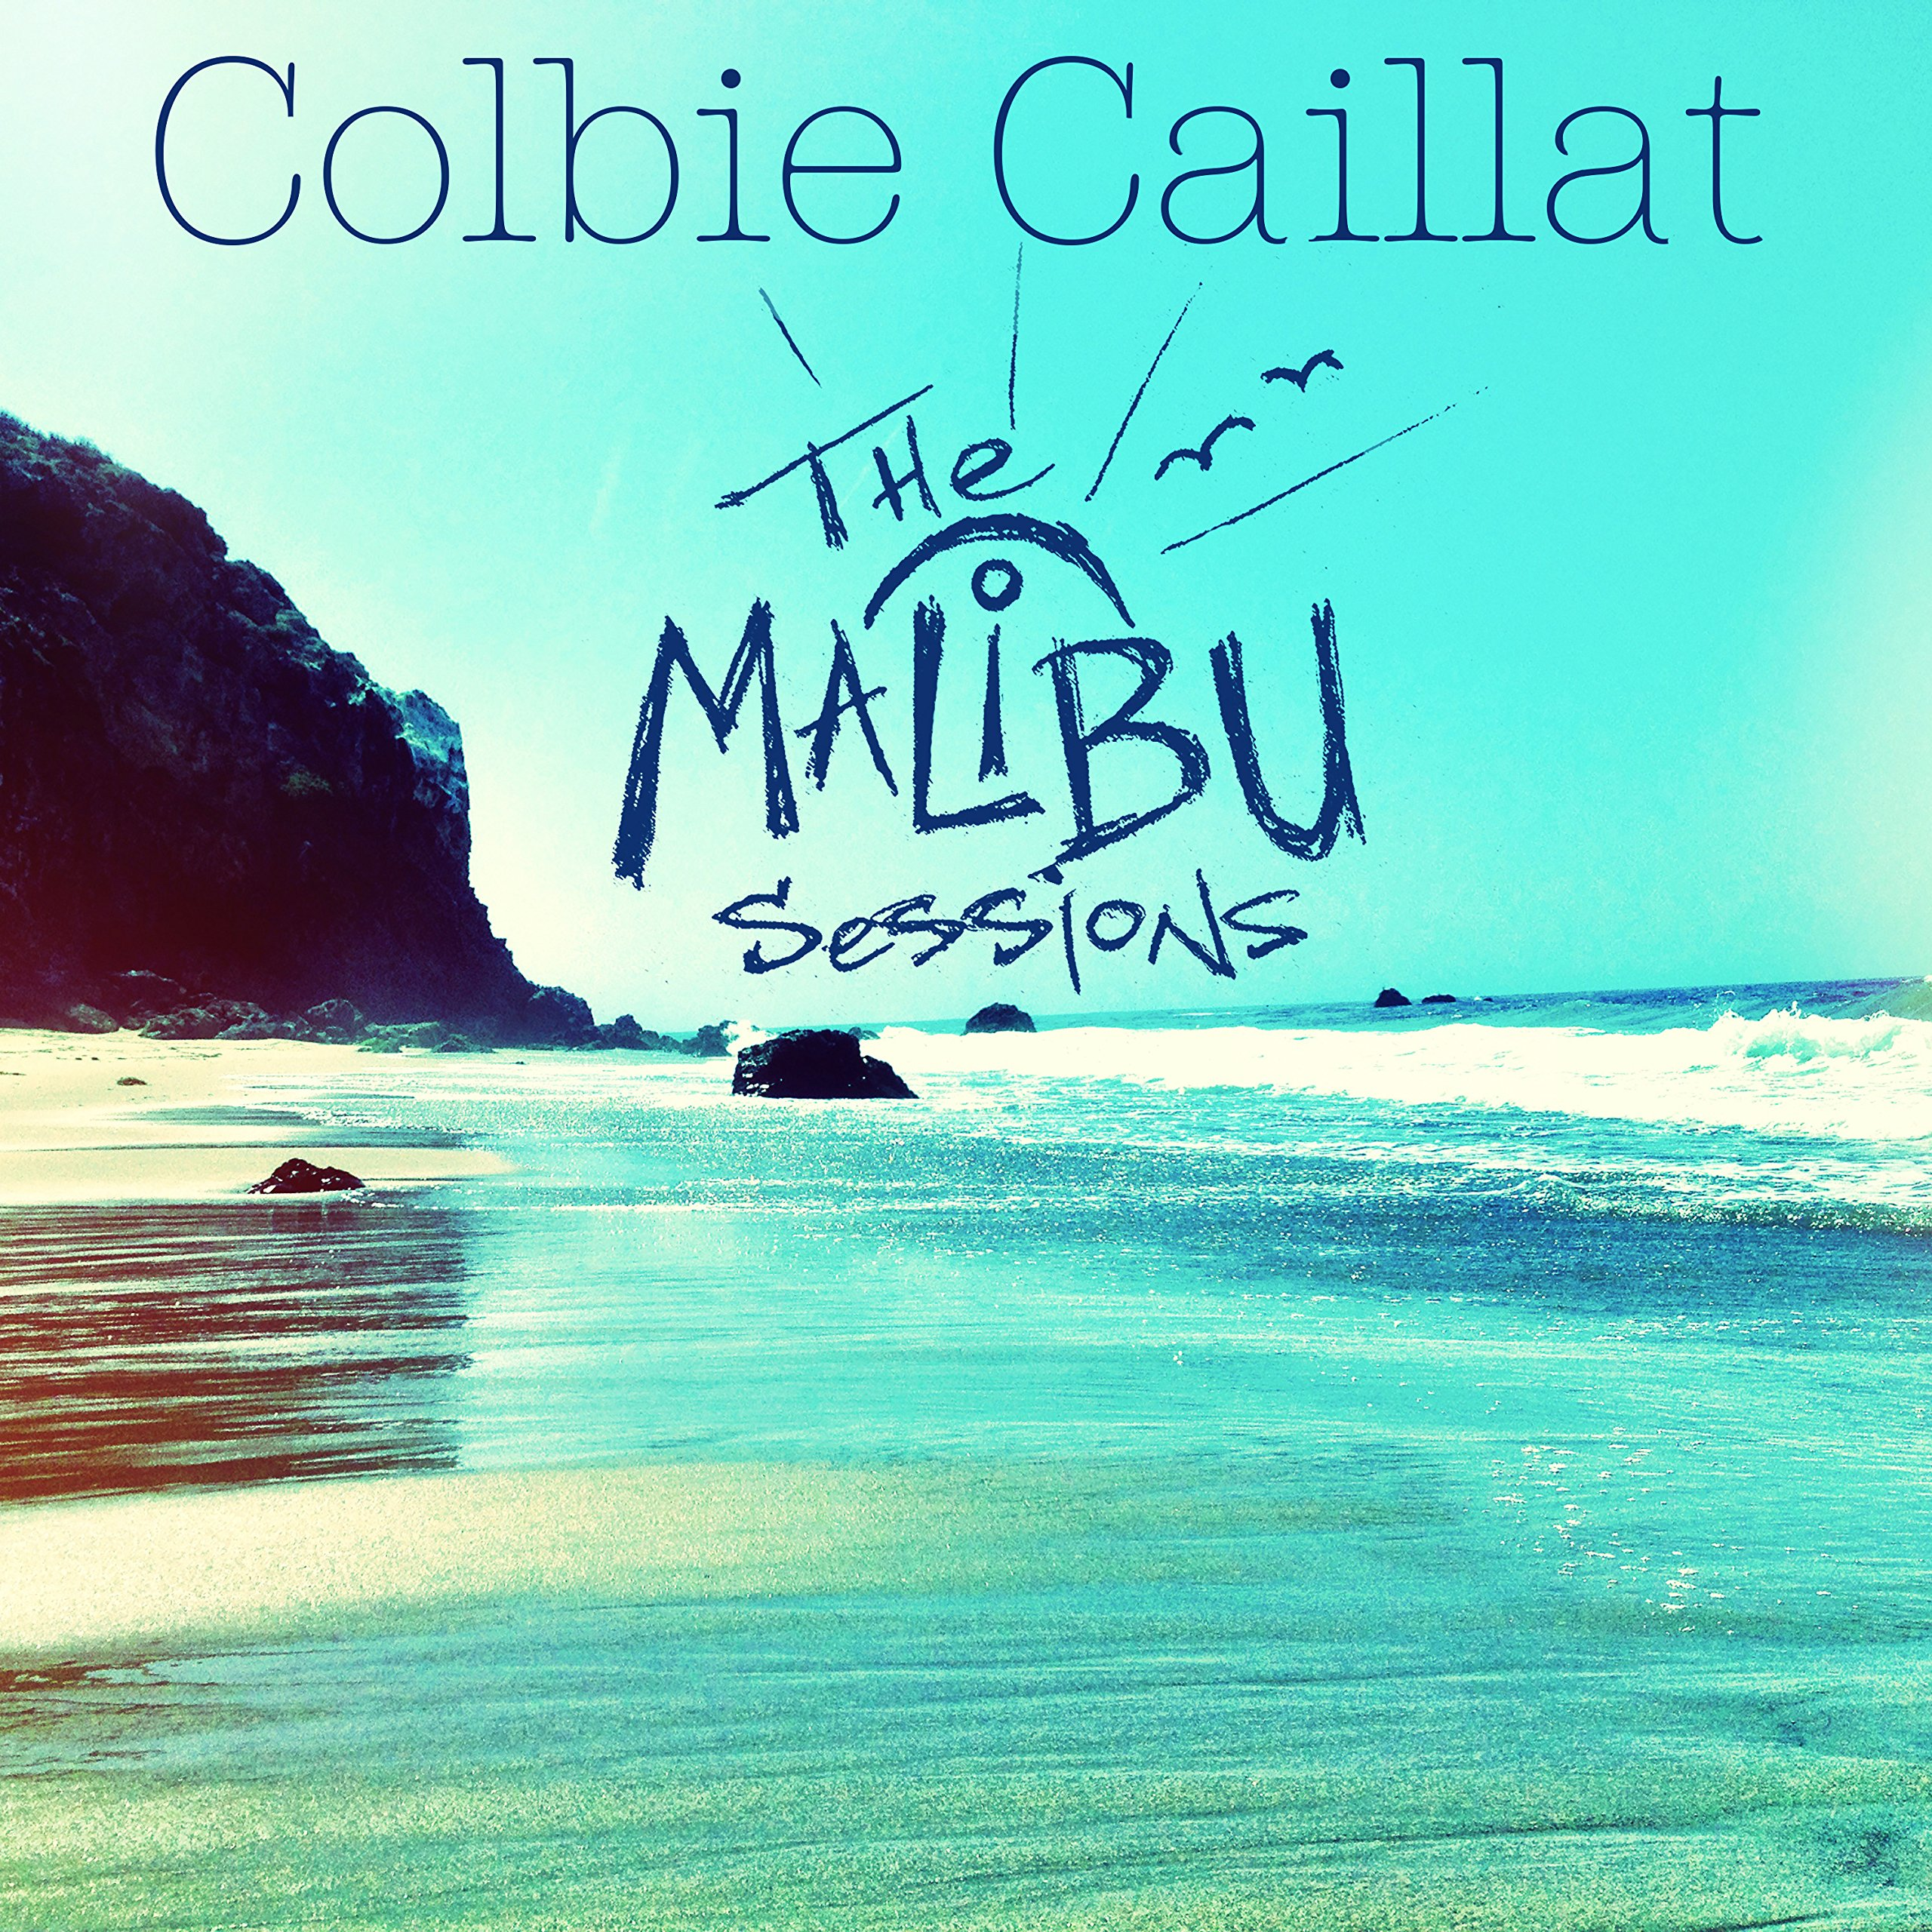 CD : Colbie Caillat - Malibu Sessions (Digipack Packaging)